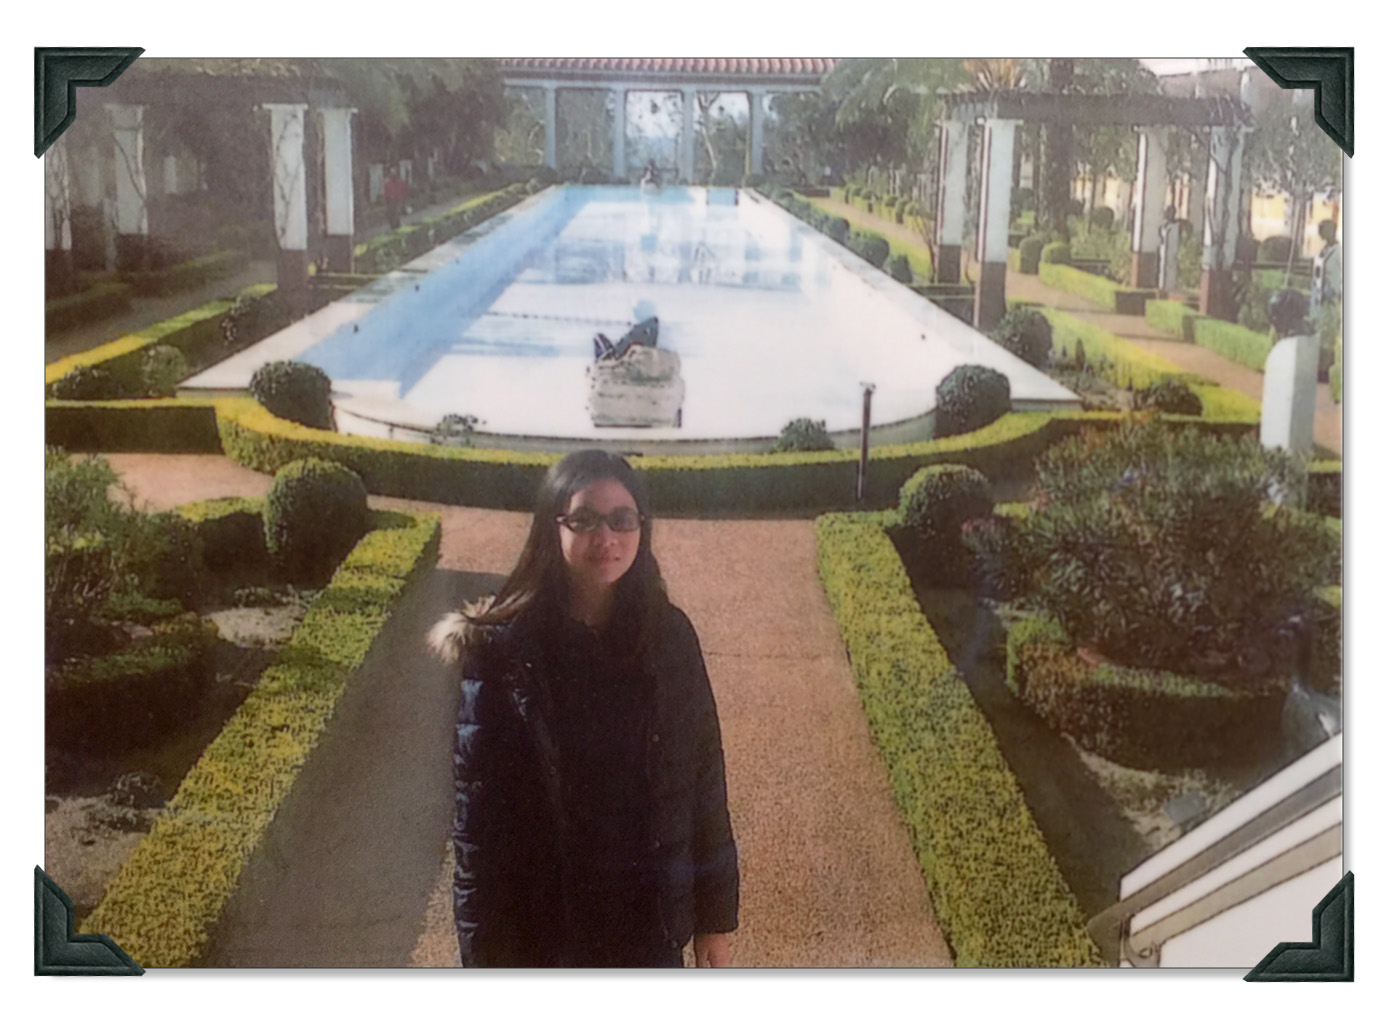 An 11-Year-Old Reviews the Getty Villa